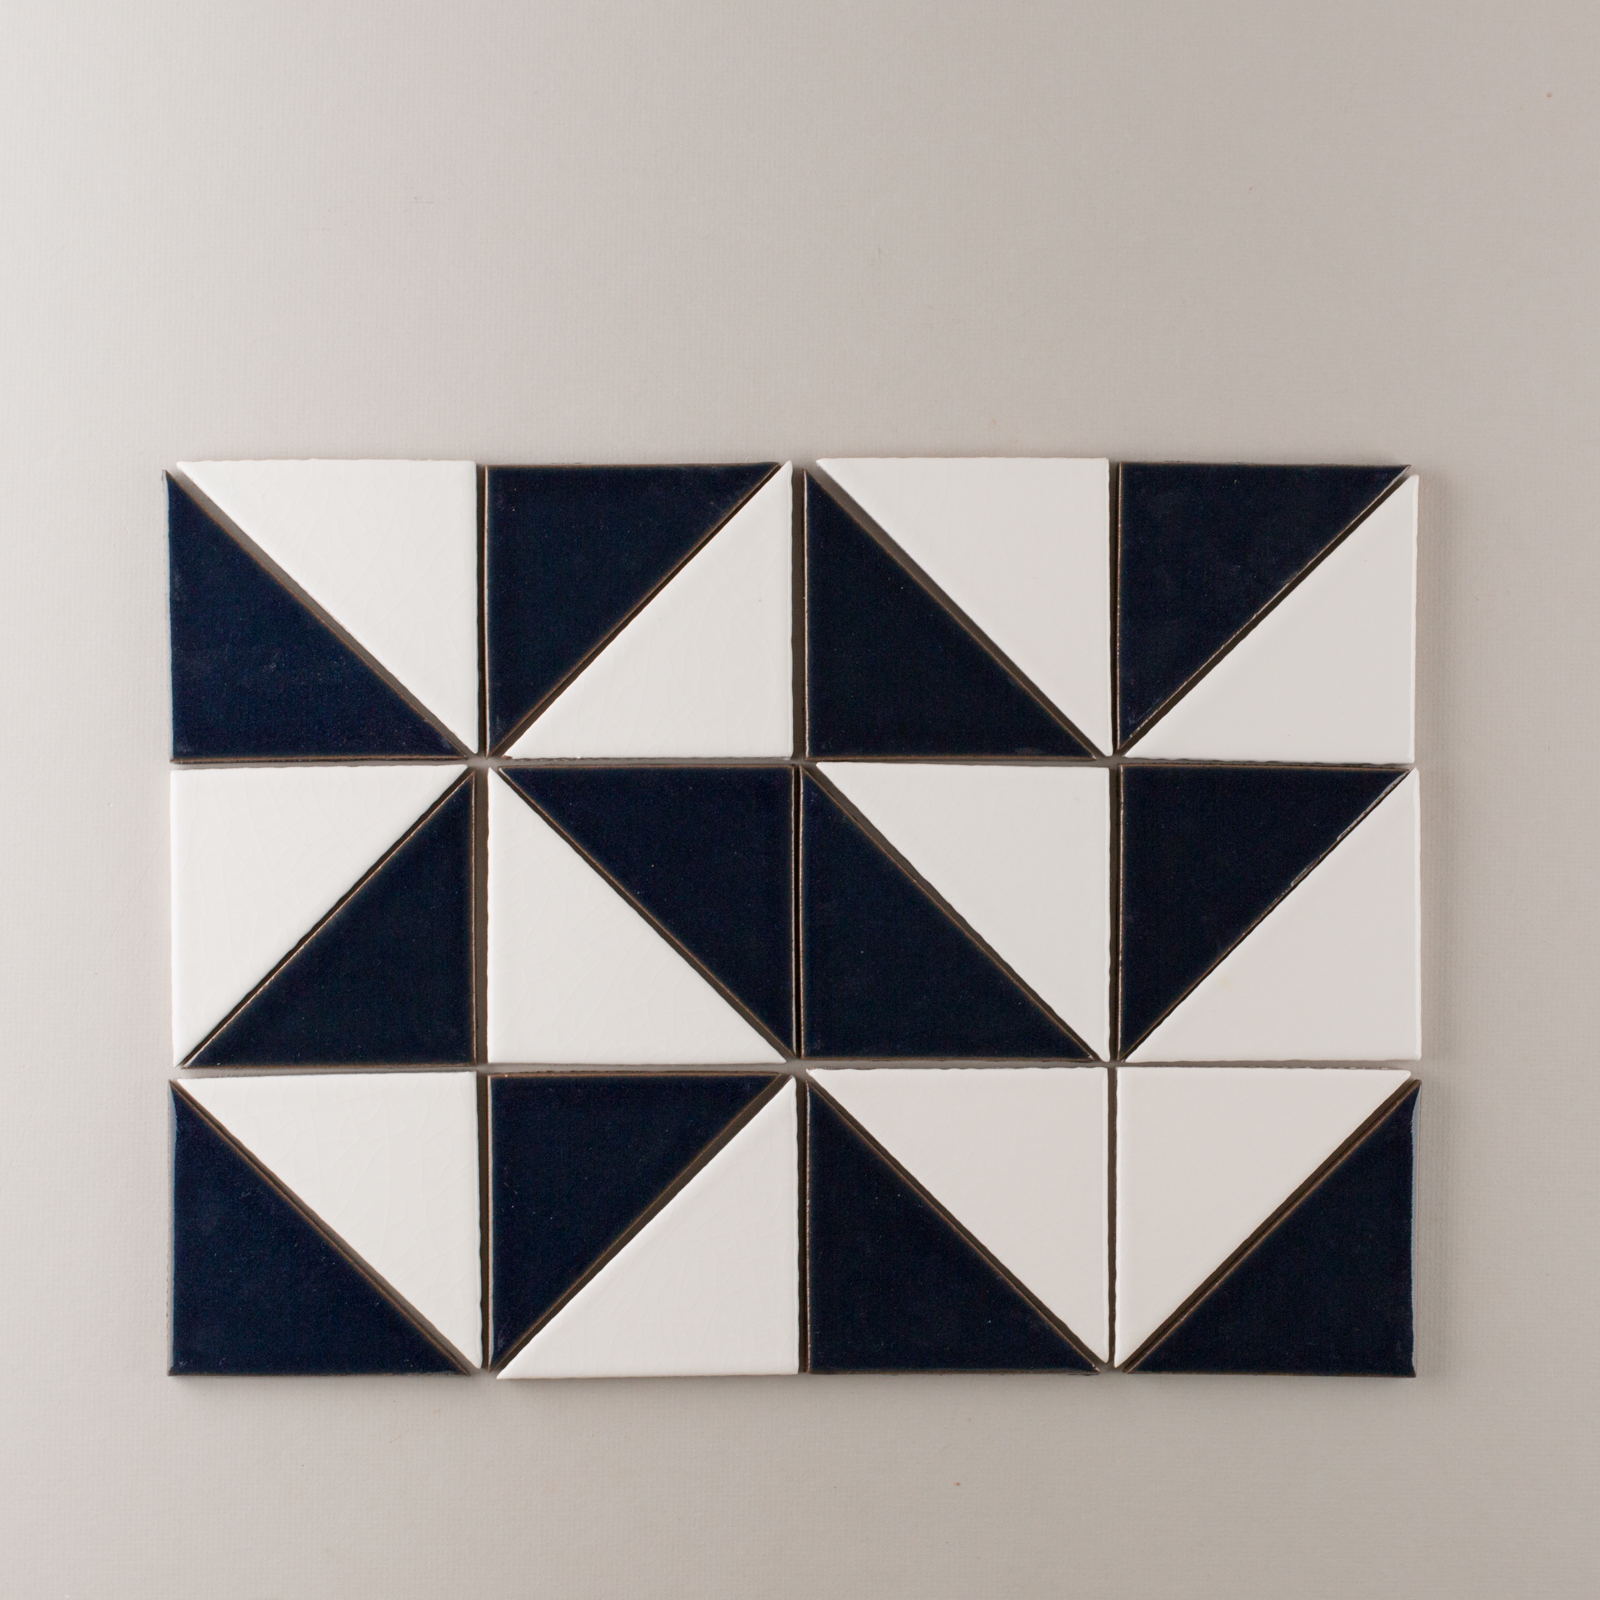 triangles introducing 4 new tile